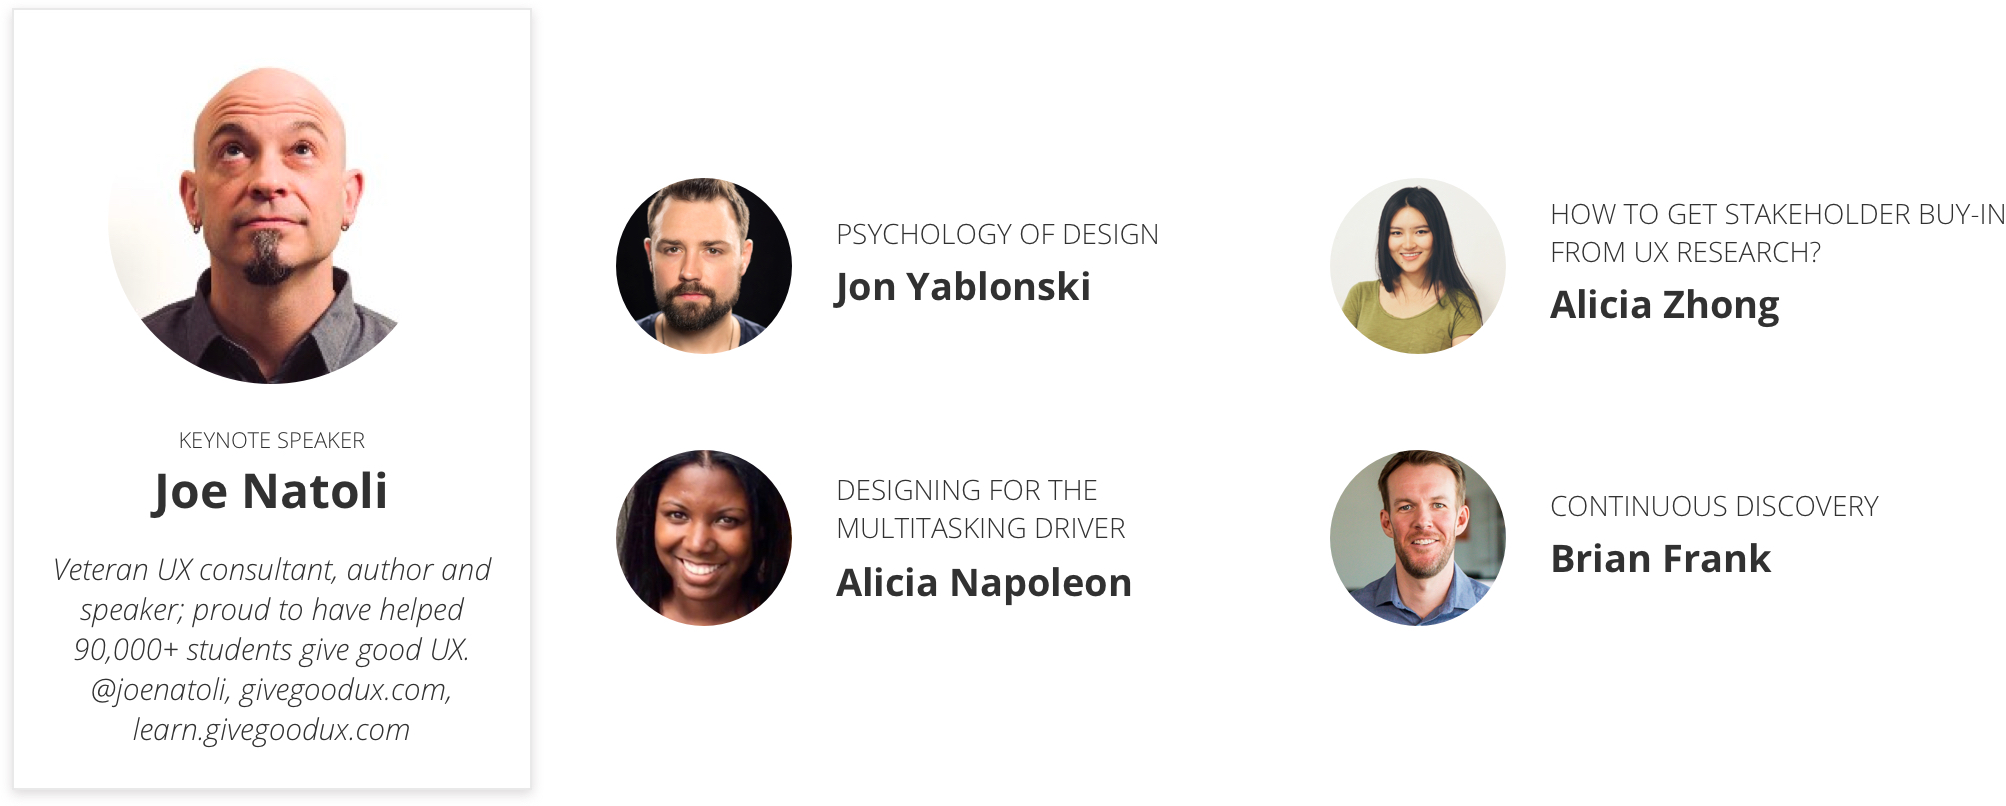 LTUX speaker list: Keyote by Joe Natoli, Psychology of design by Jon Yablonski, How to get stakeholder buy-in from UX research? by Alicia Zhong, Designing for the multitasking driver by Alicia Napoleon and Continuous Discover by Brian Frank